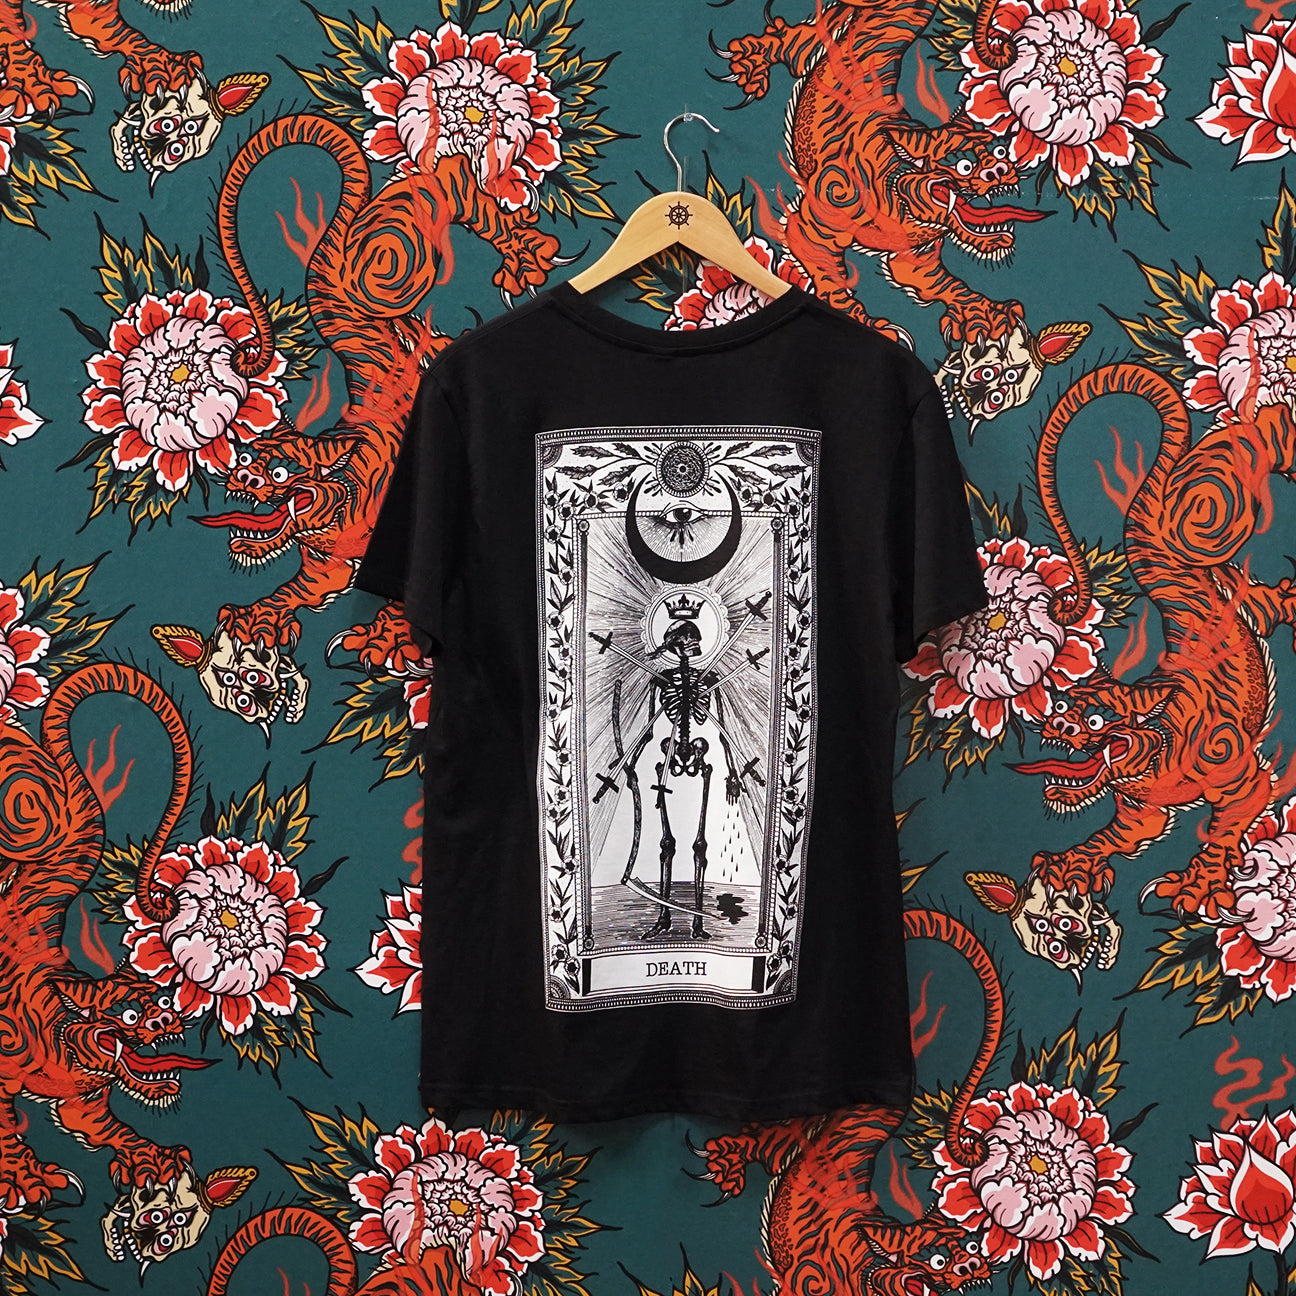 Death Tarot T-Shirt Black